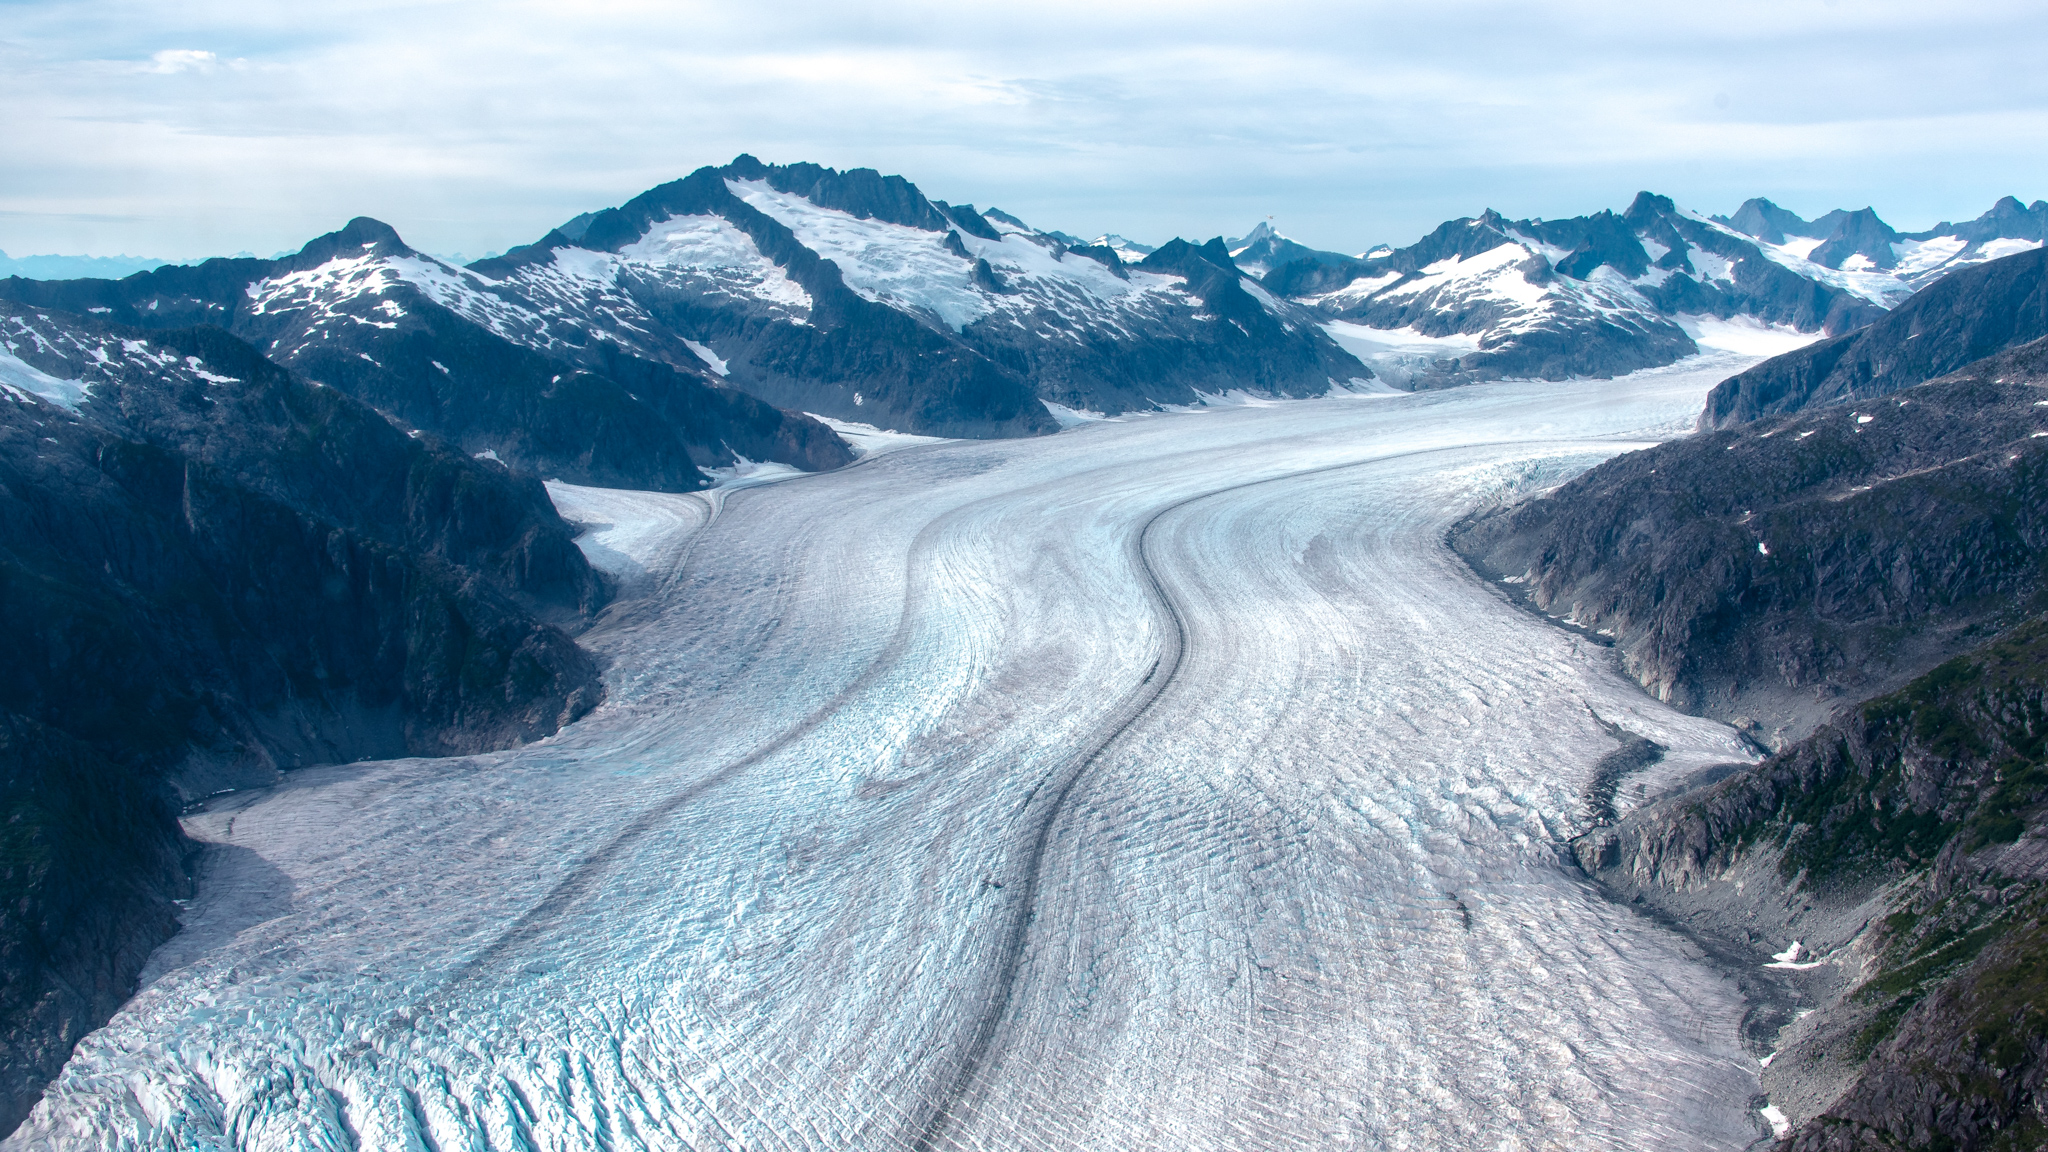 2017-08-10 - Juneau Ice Field Seaplane Tour - 123